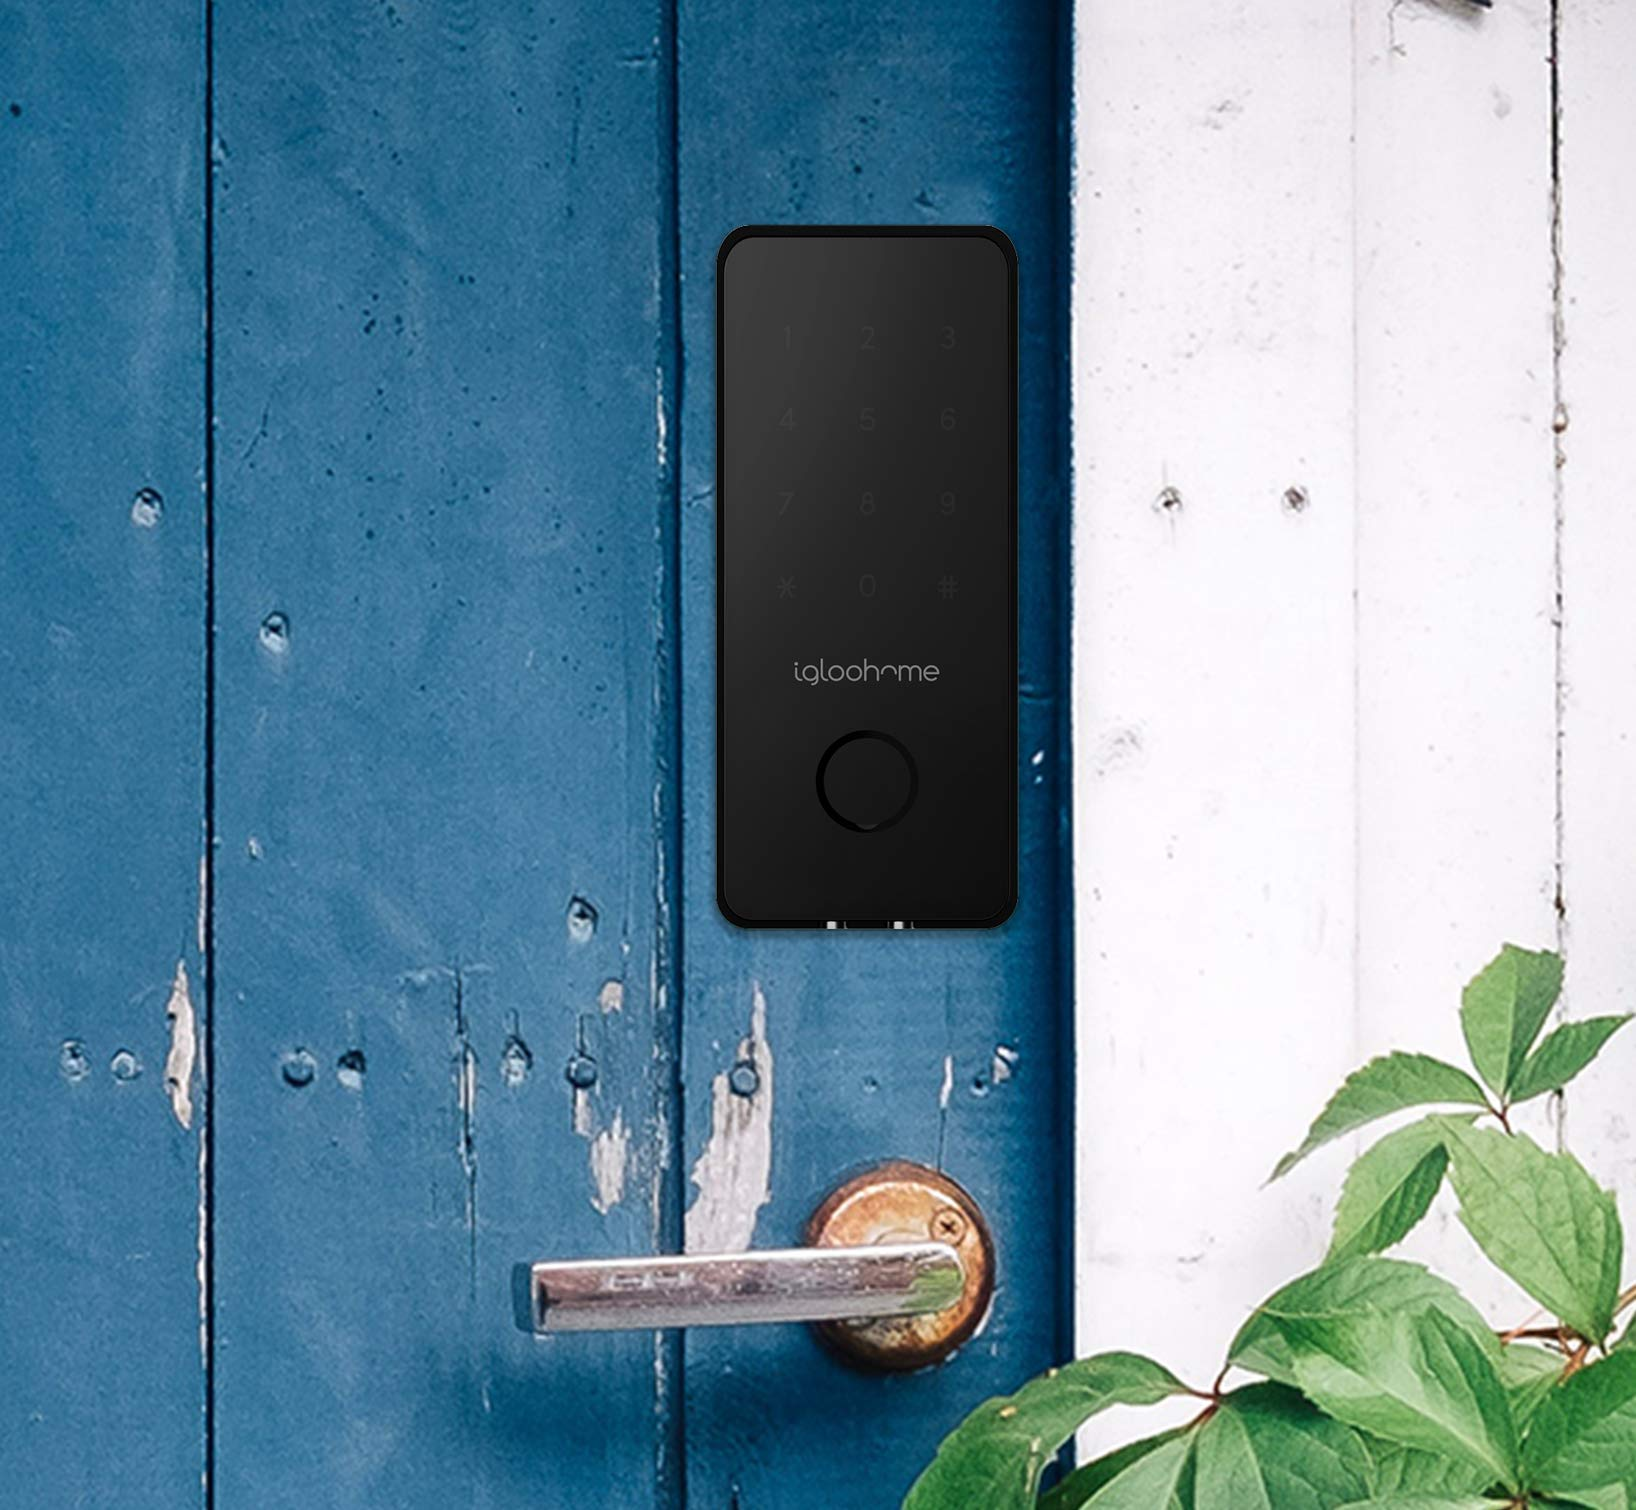 Igloohome Smart Electronic Deadbolt 2S, Grant & Control Remote Access with Pin Code - Touch Screen Keypad with Built-in Alarm - Bluetooth Enabled Works Offline - Works with Your Smartphone by igloohome (Image #9)